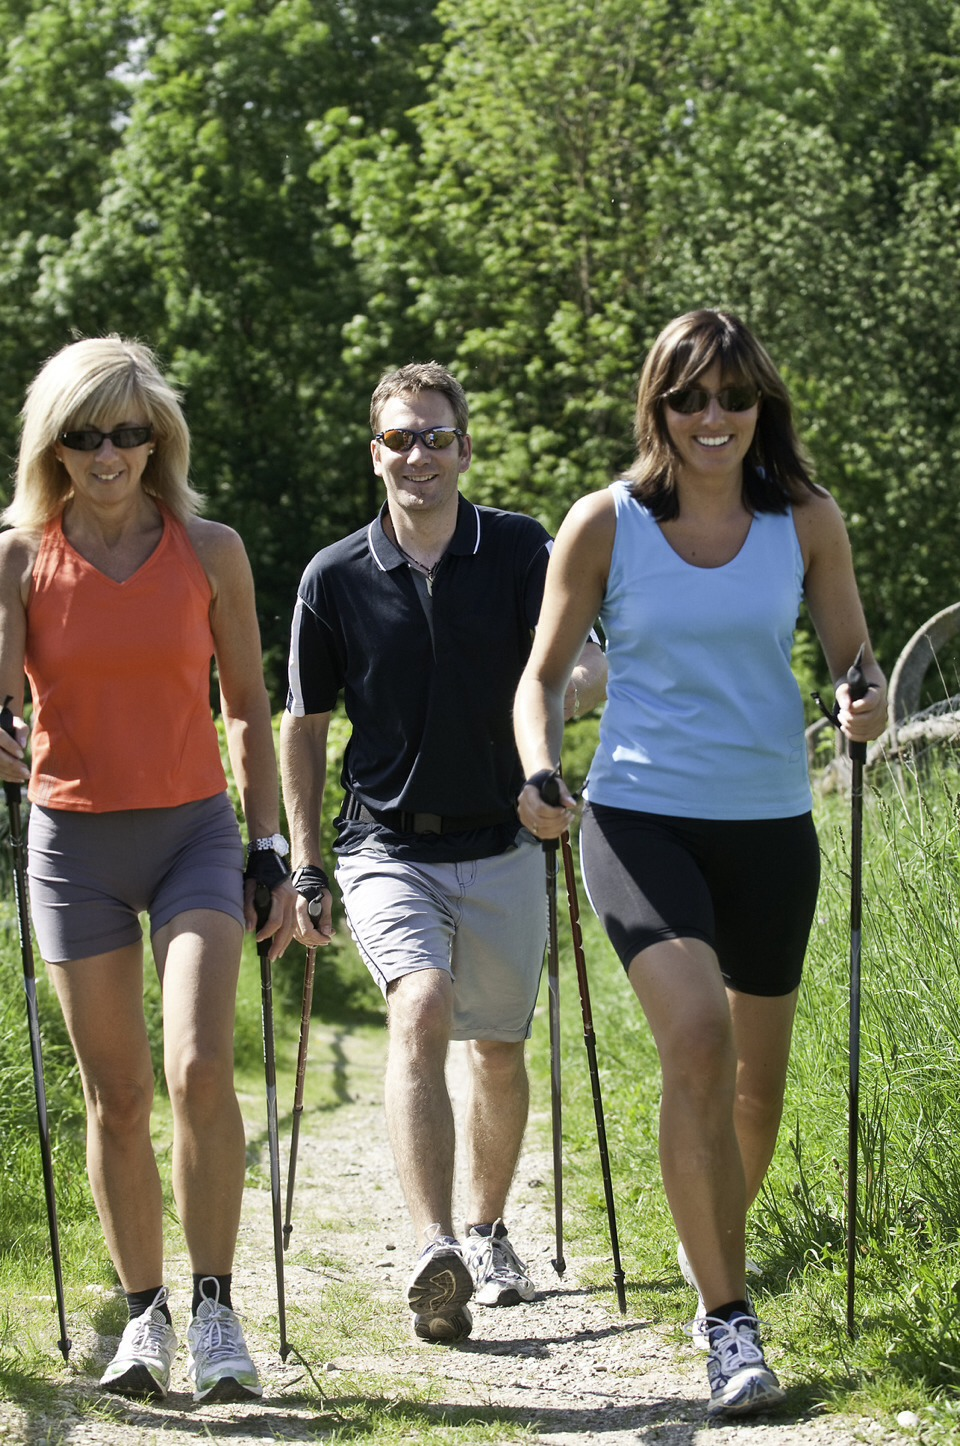 Walking with Nordic poles makes you burn 20% more calories than without them.